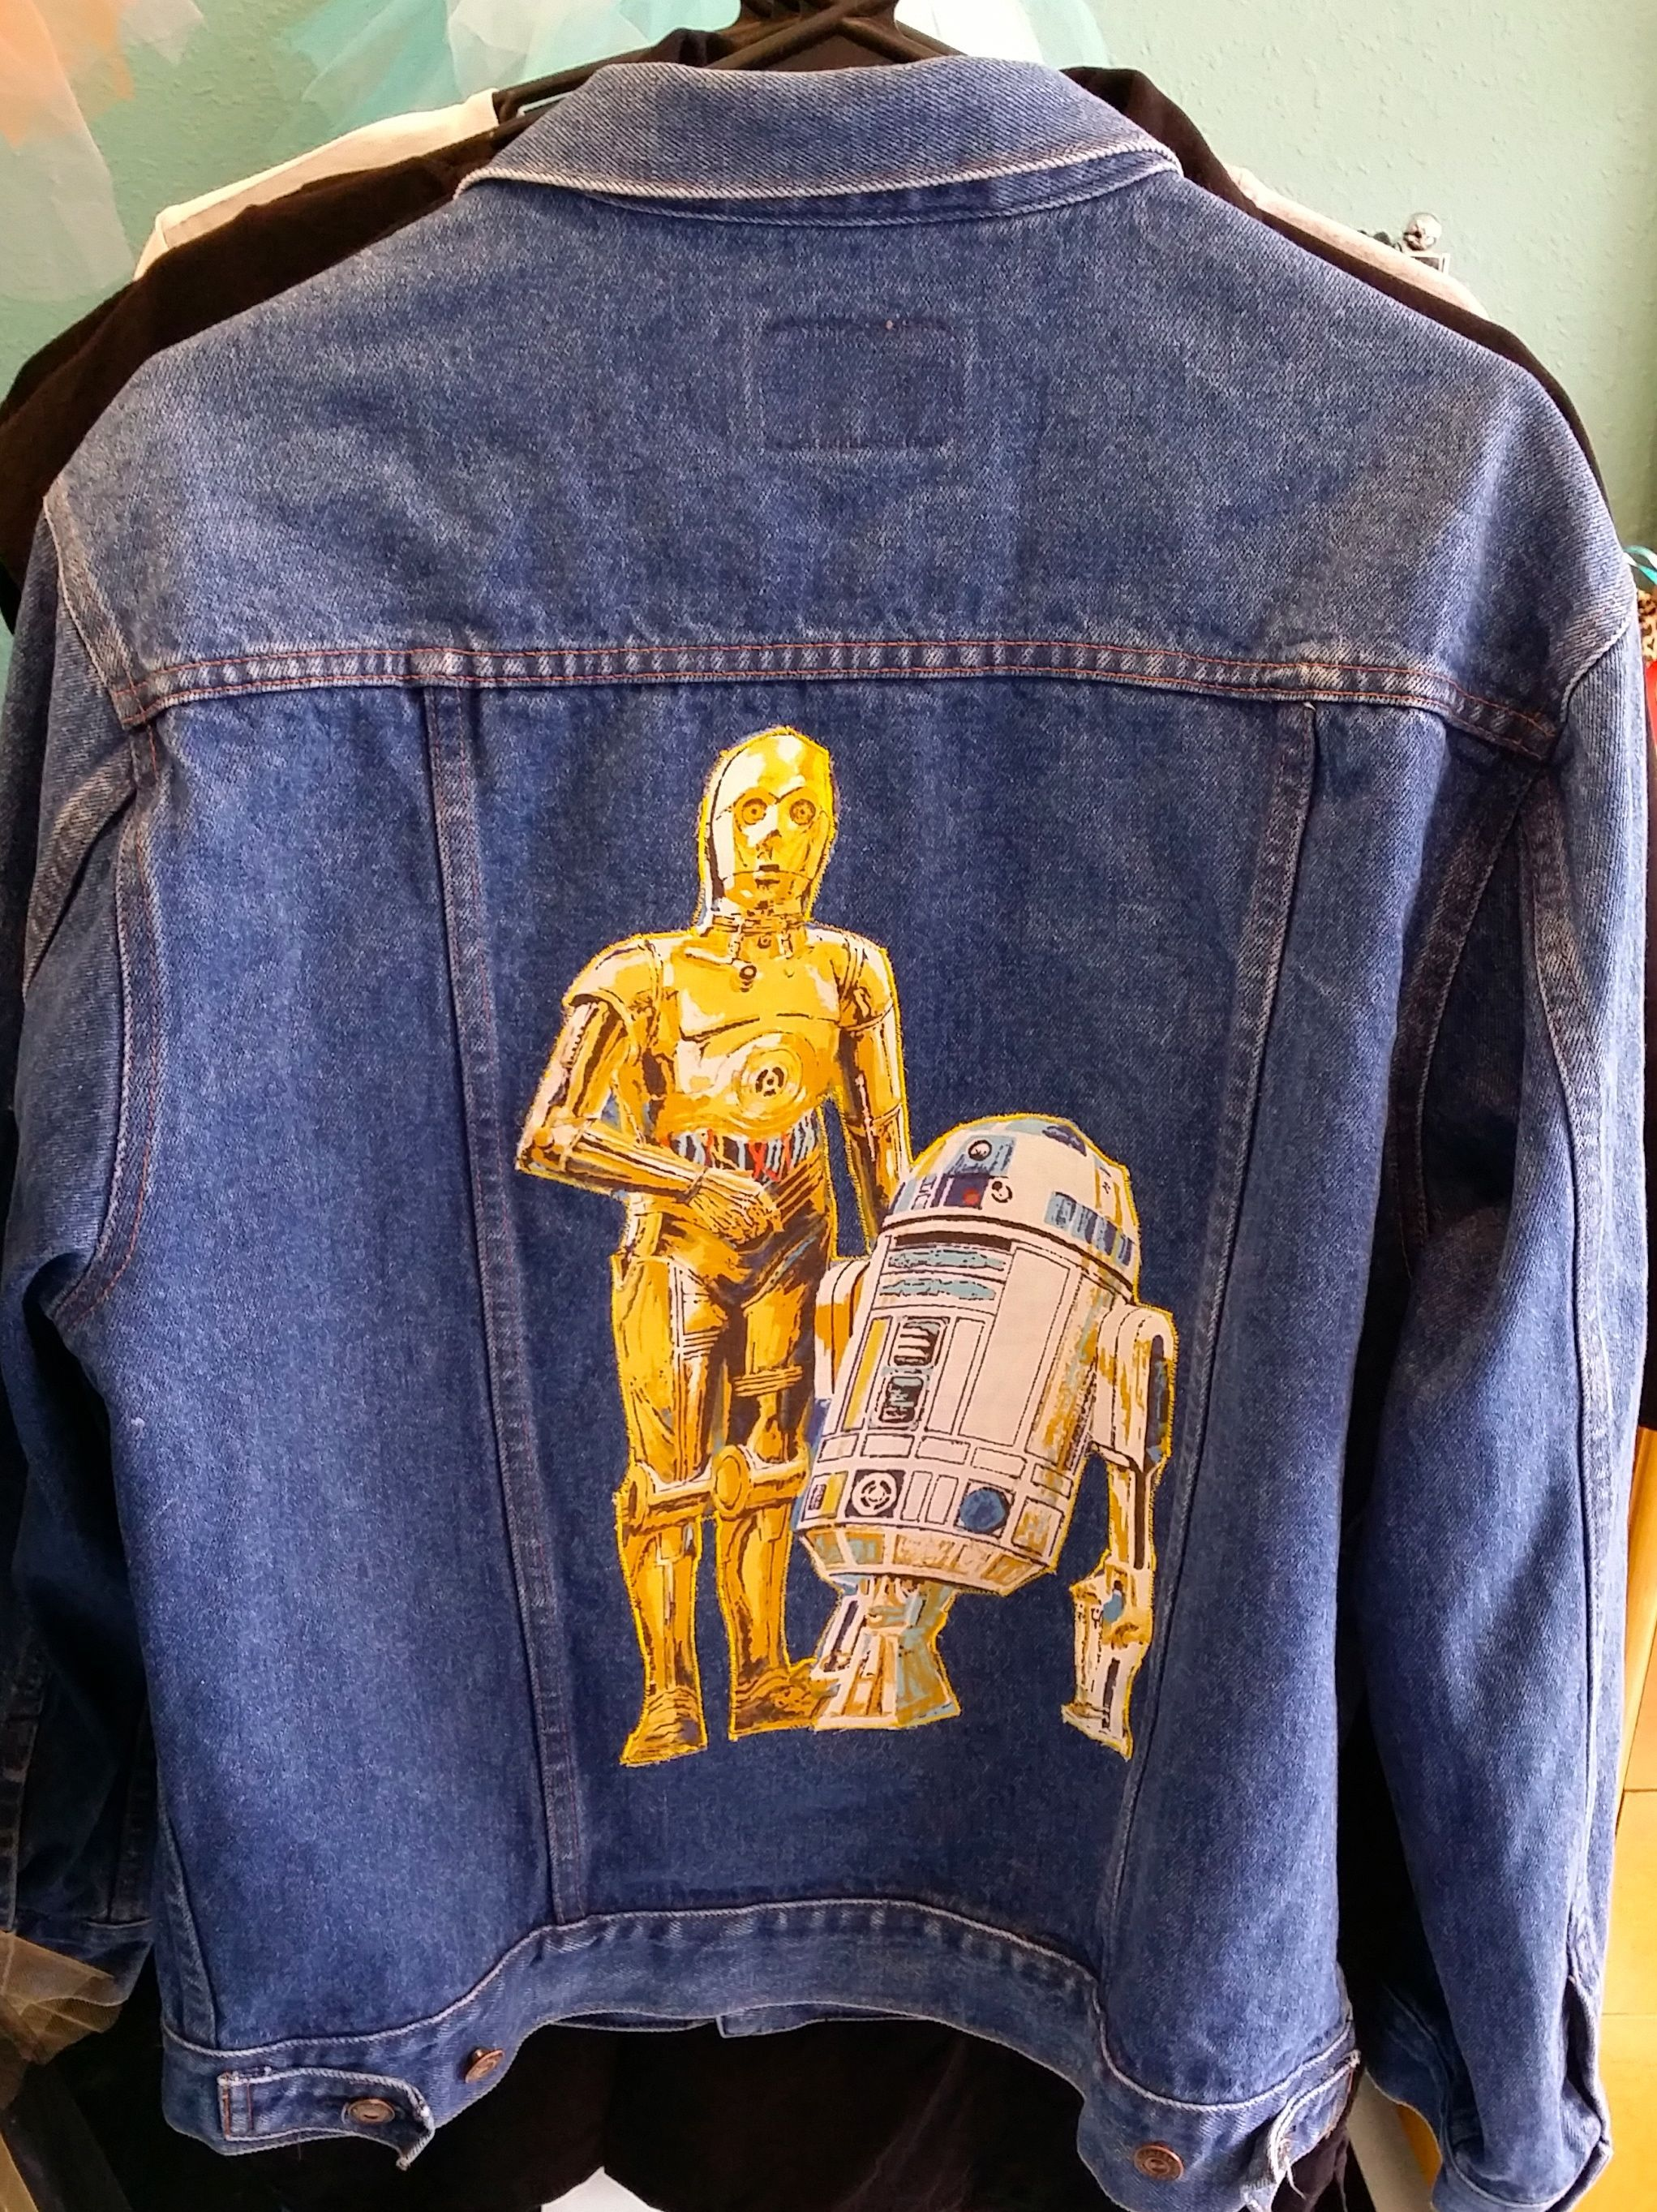 This one of a kind Star Wars Men's Medium Gap Jean Jacket is a real head turner for sure! The C3PO & R2D2 image is meticulously stitched on this medium Gap Jean Jacket. This image is vintage Star Wars. You will not find another on the street - no lameness of same.